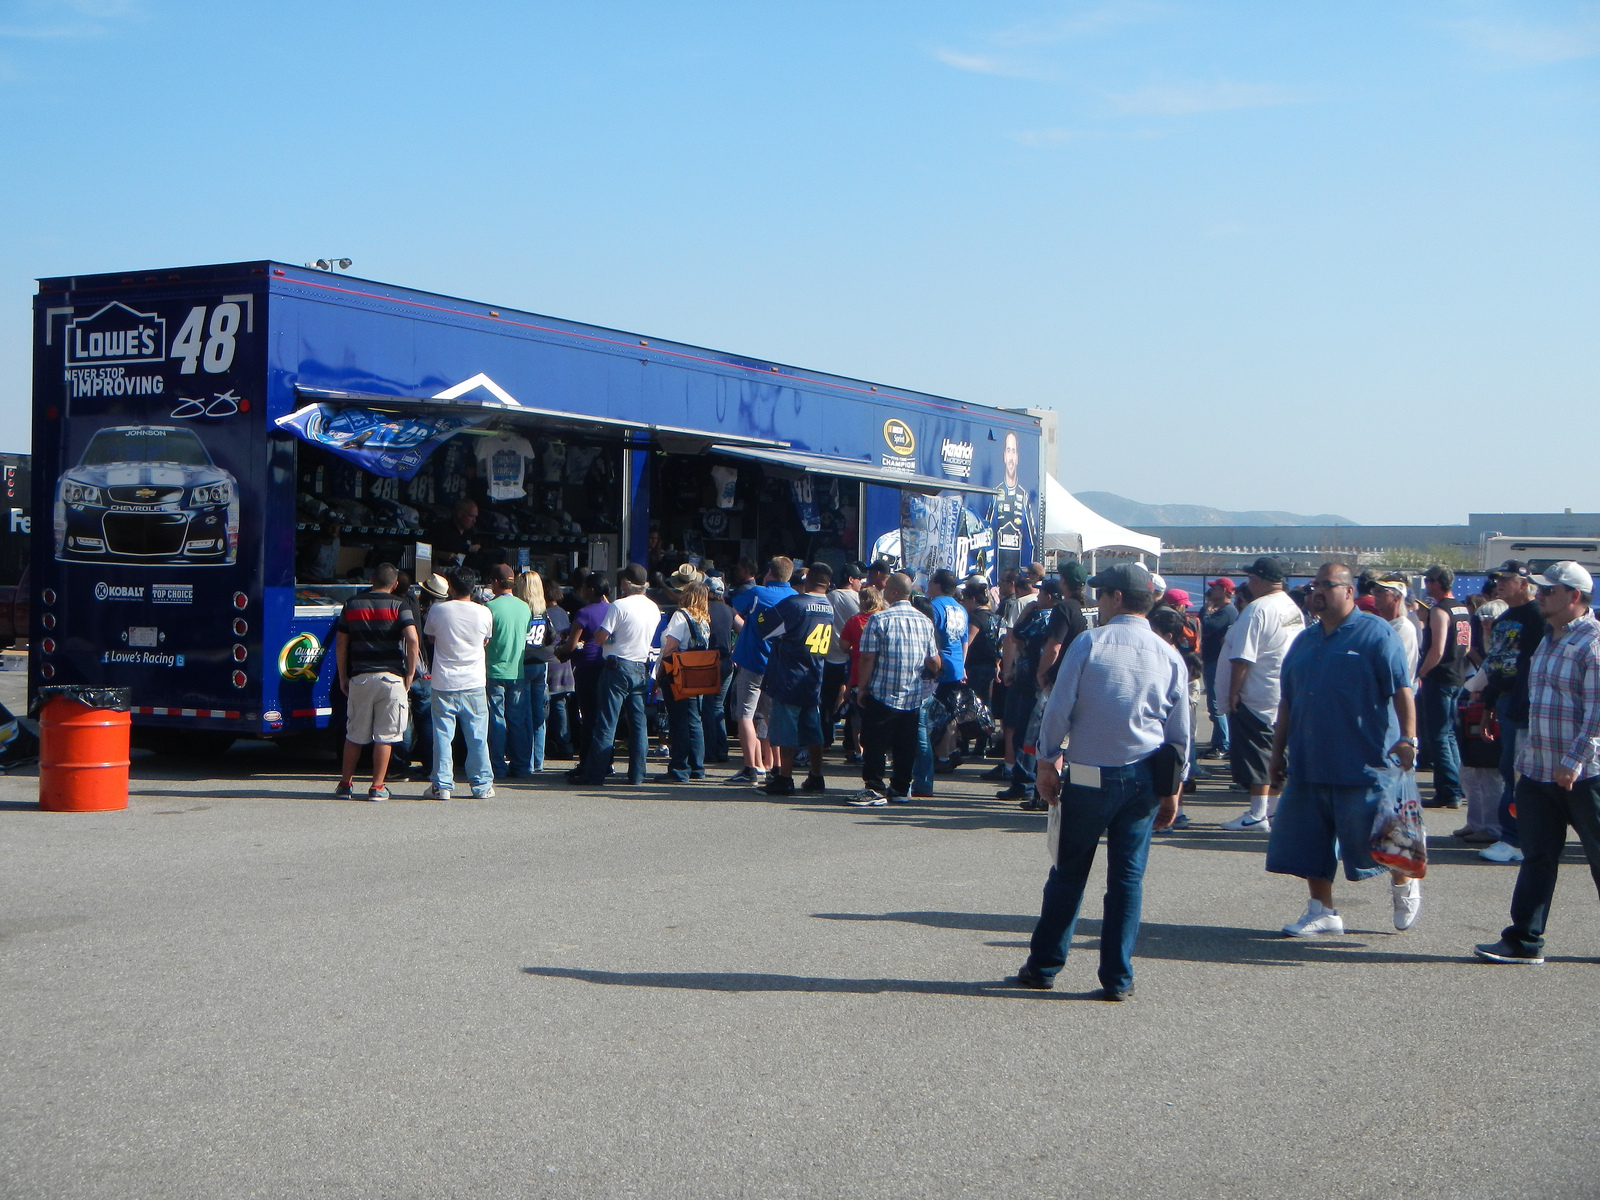 Jimmie Johnson's Merch. I was rooting for the cute local boy!